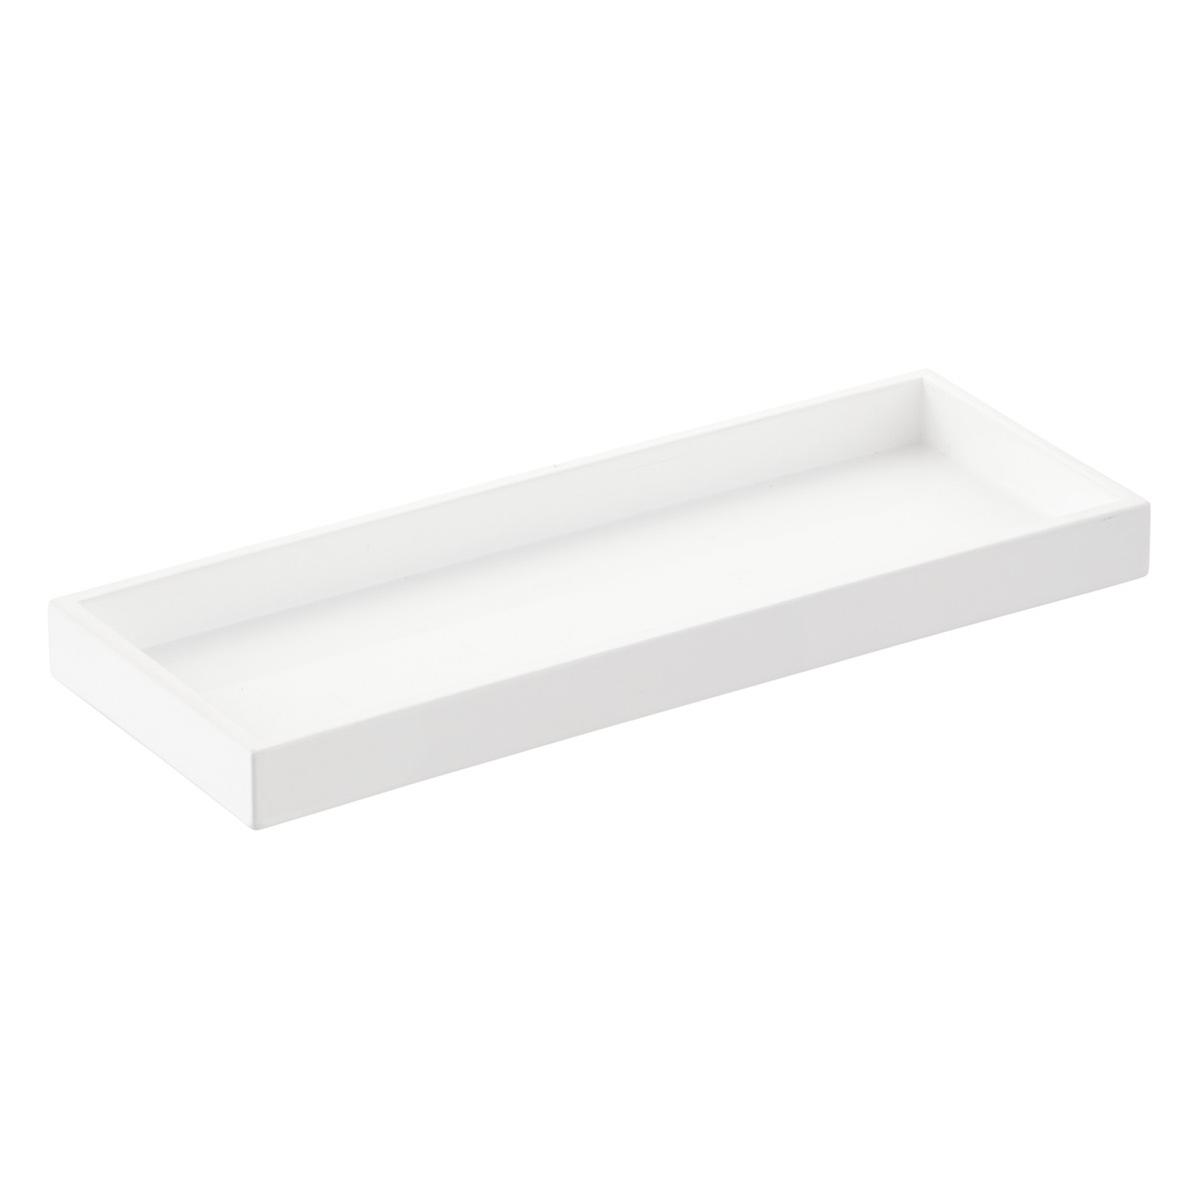 white bathroom accessories - Bathroom Accessories Vanity Tray